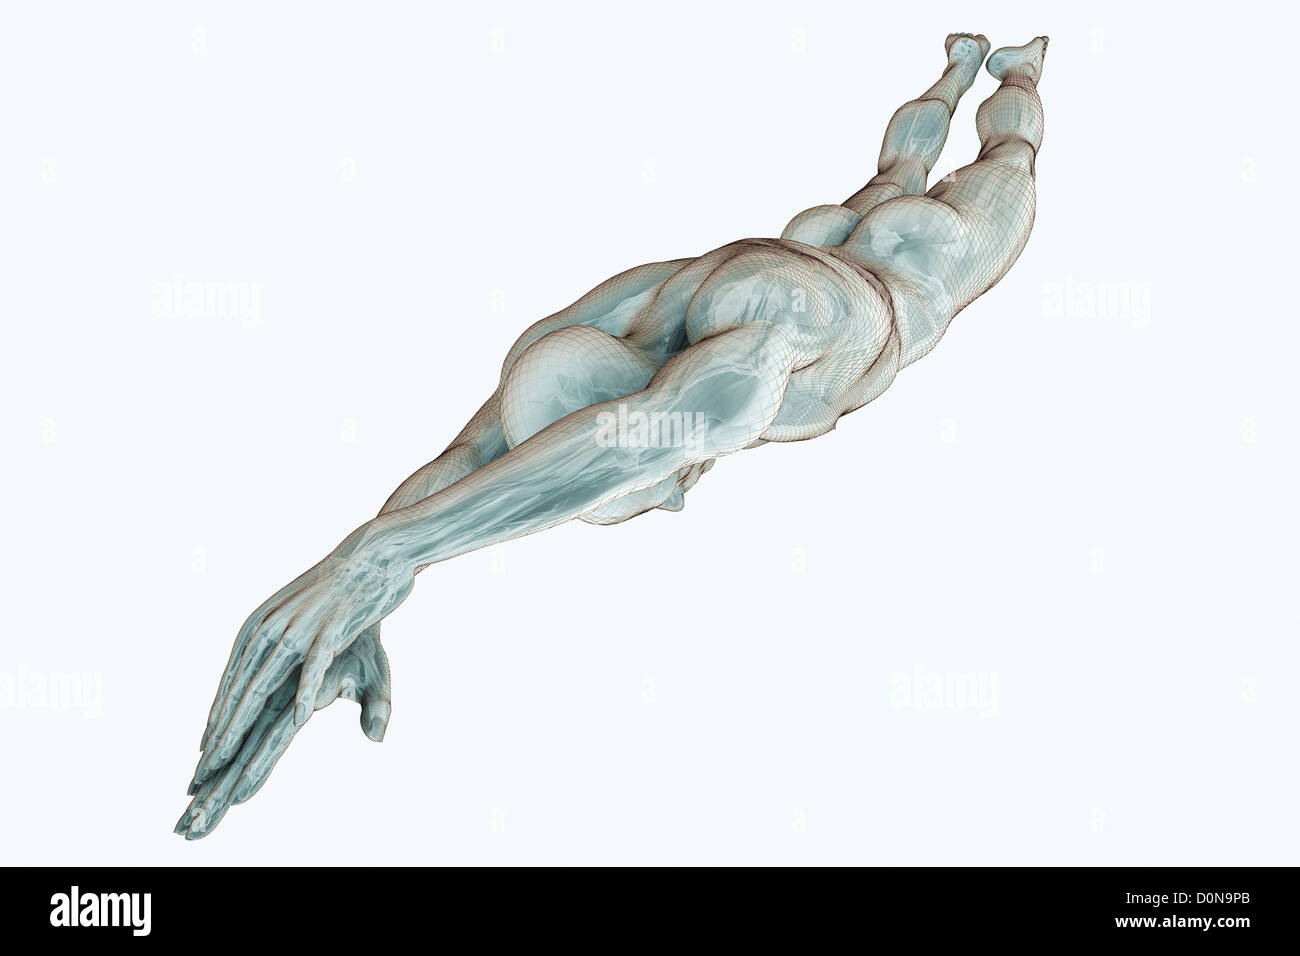 Male figure diving with the internal organs visible. - Stock Image